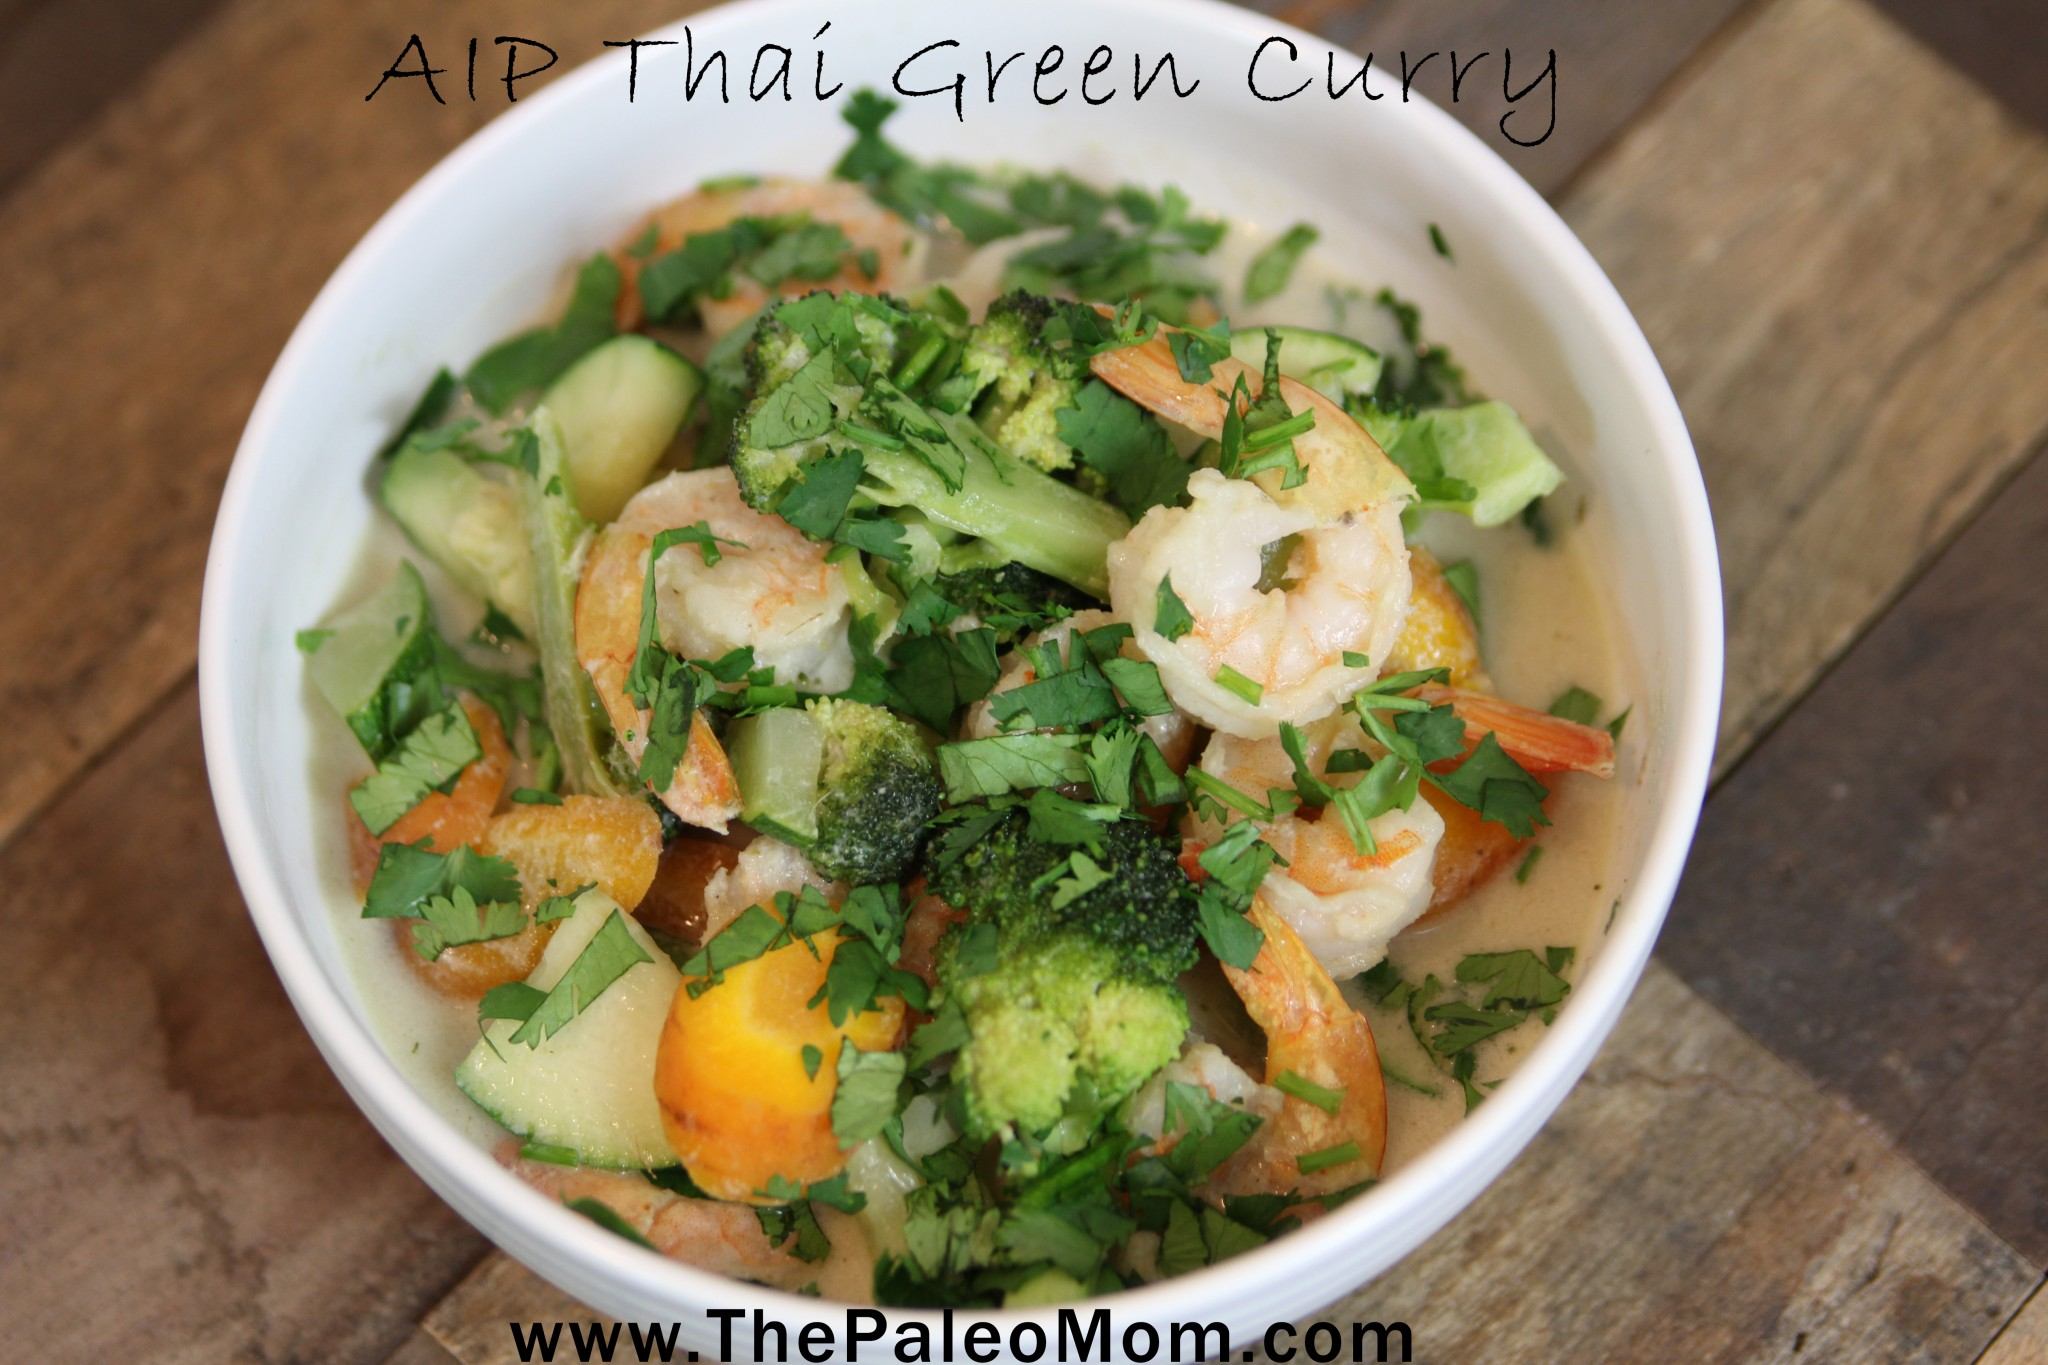 AIP Thai Green Curry